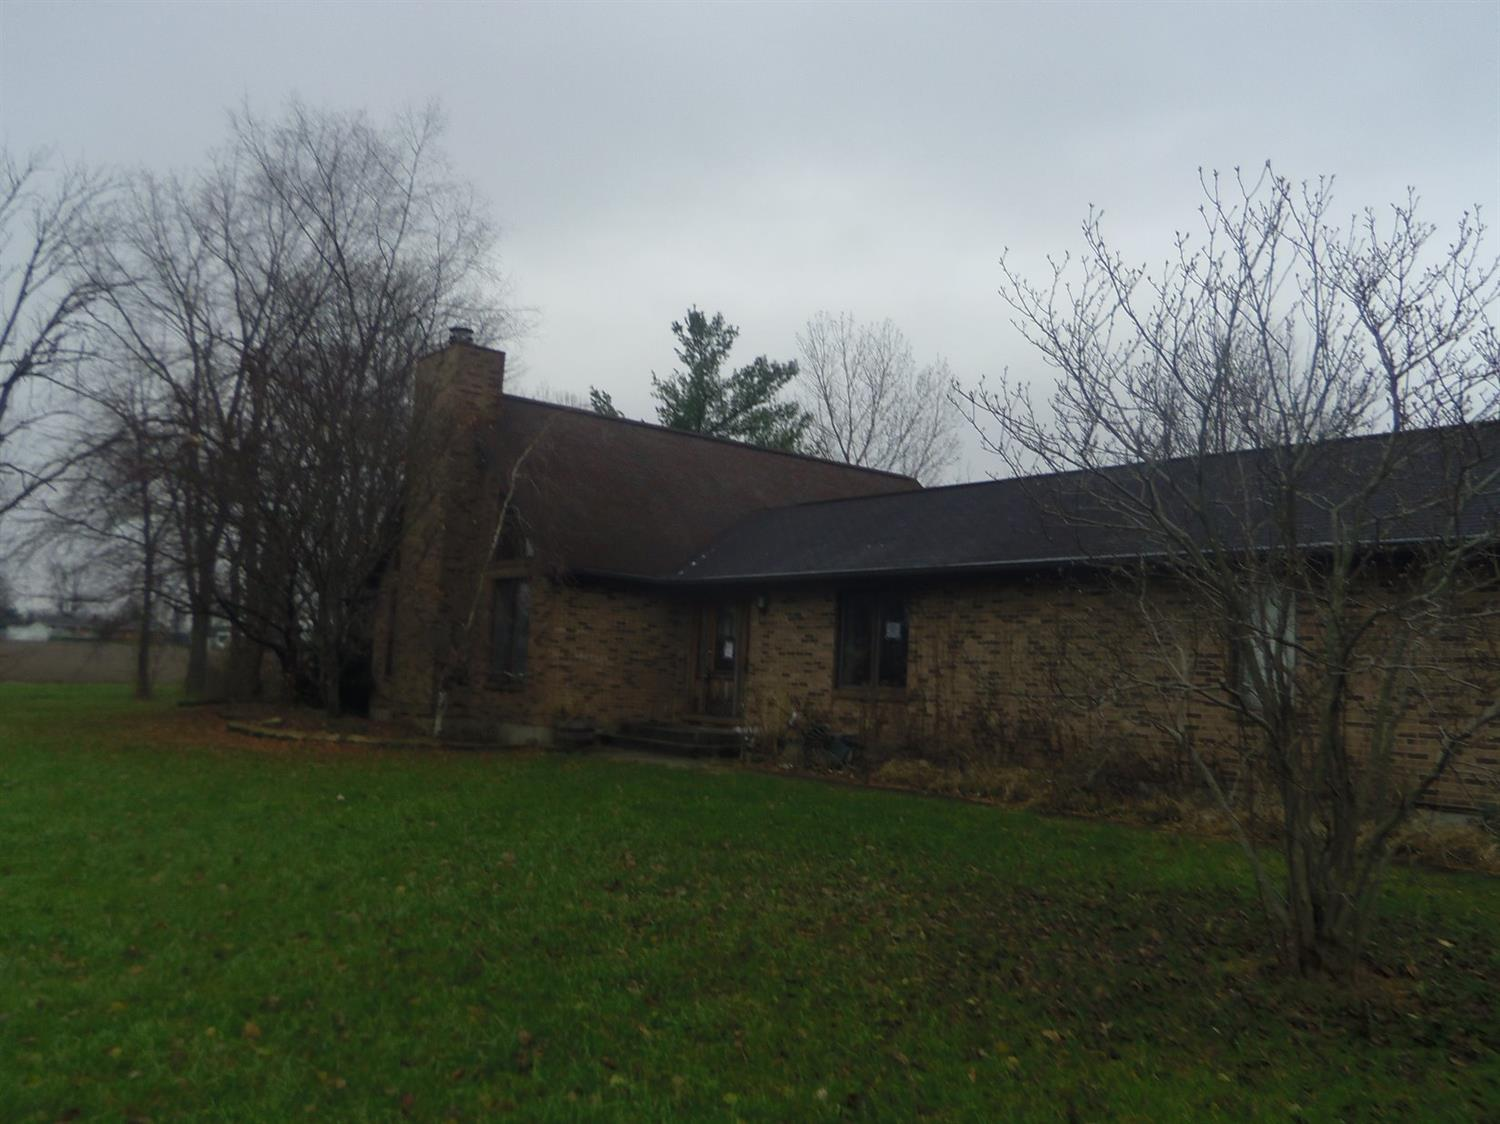 Property for sale at 801 Old 122 Road, Clearcreek Twp.,  OH 45036